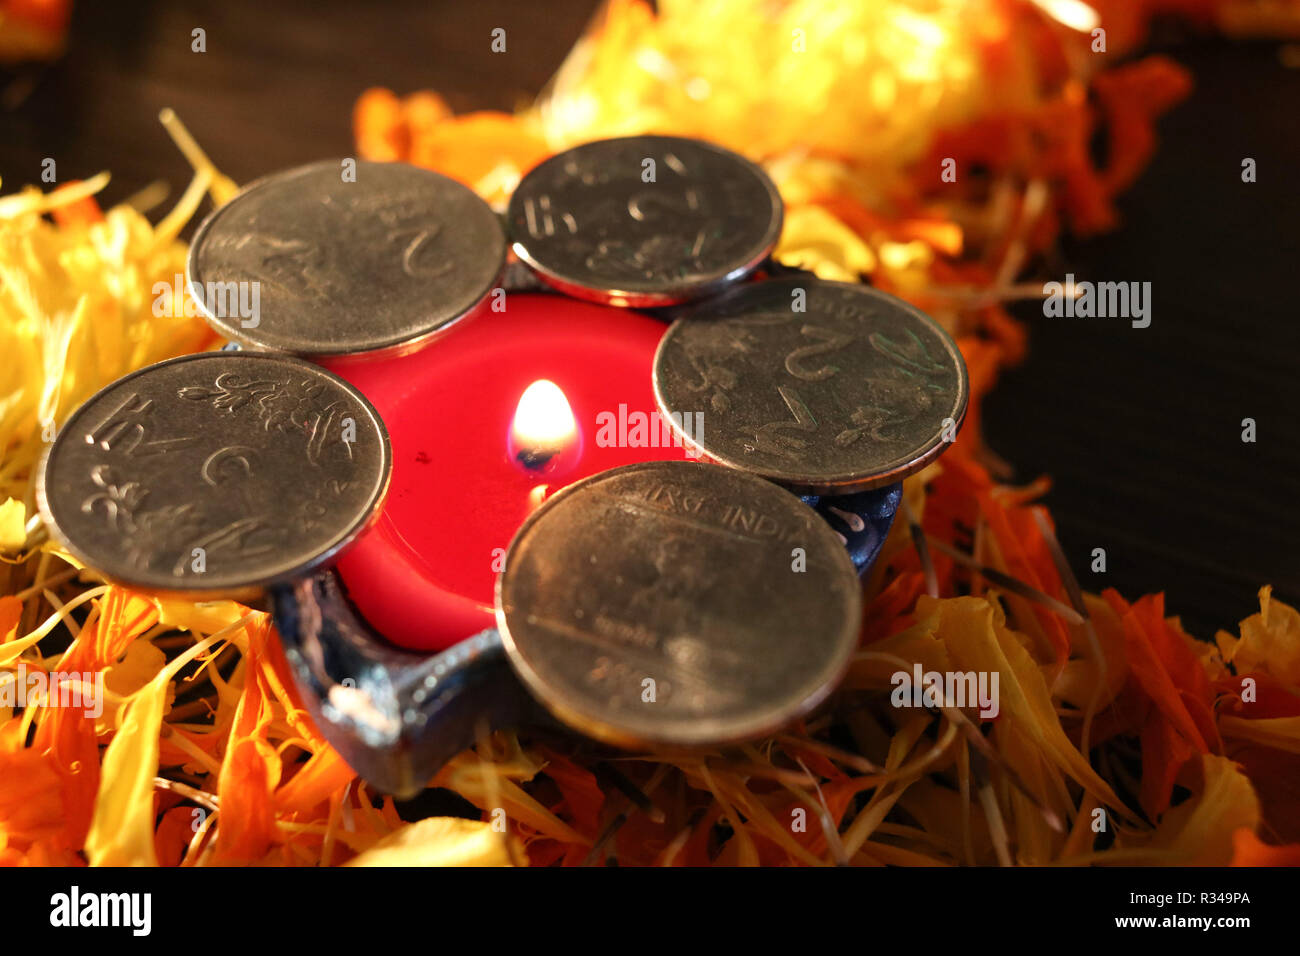 A close- up view of single lit diya for celebrating diwali and dhanteras festival in India Stock Photo